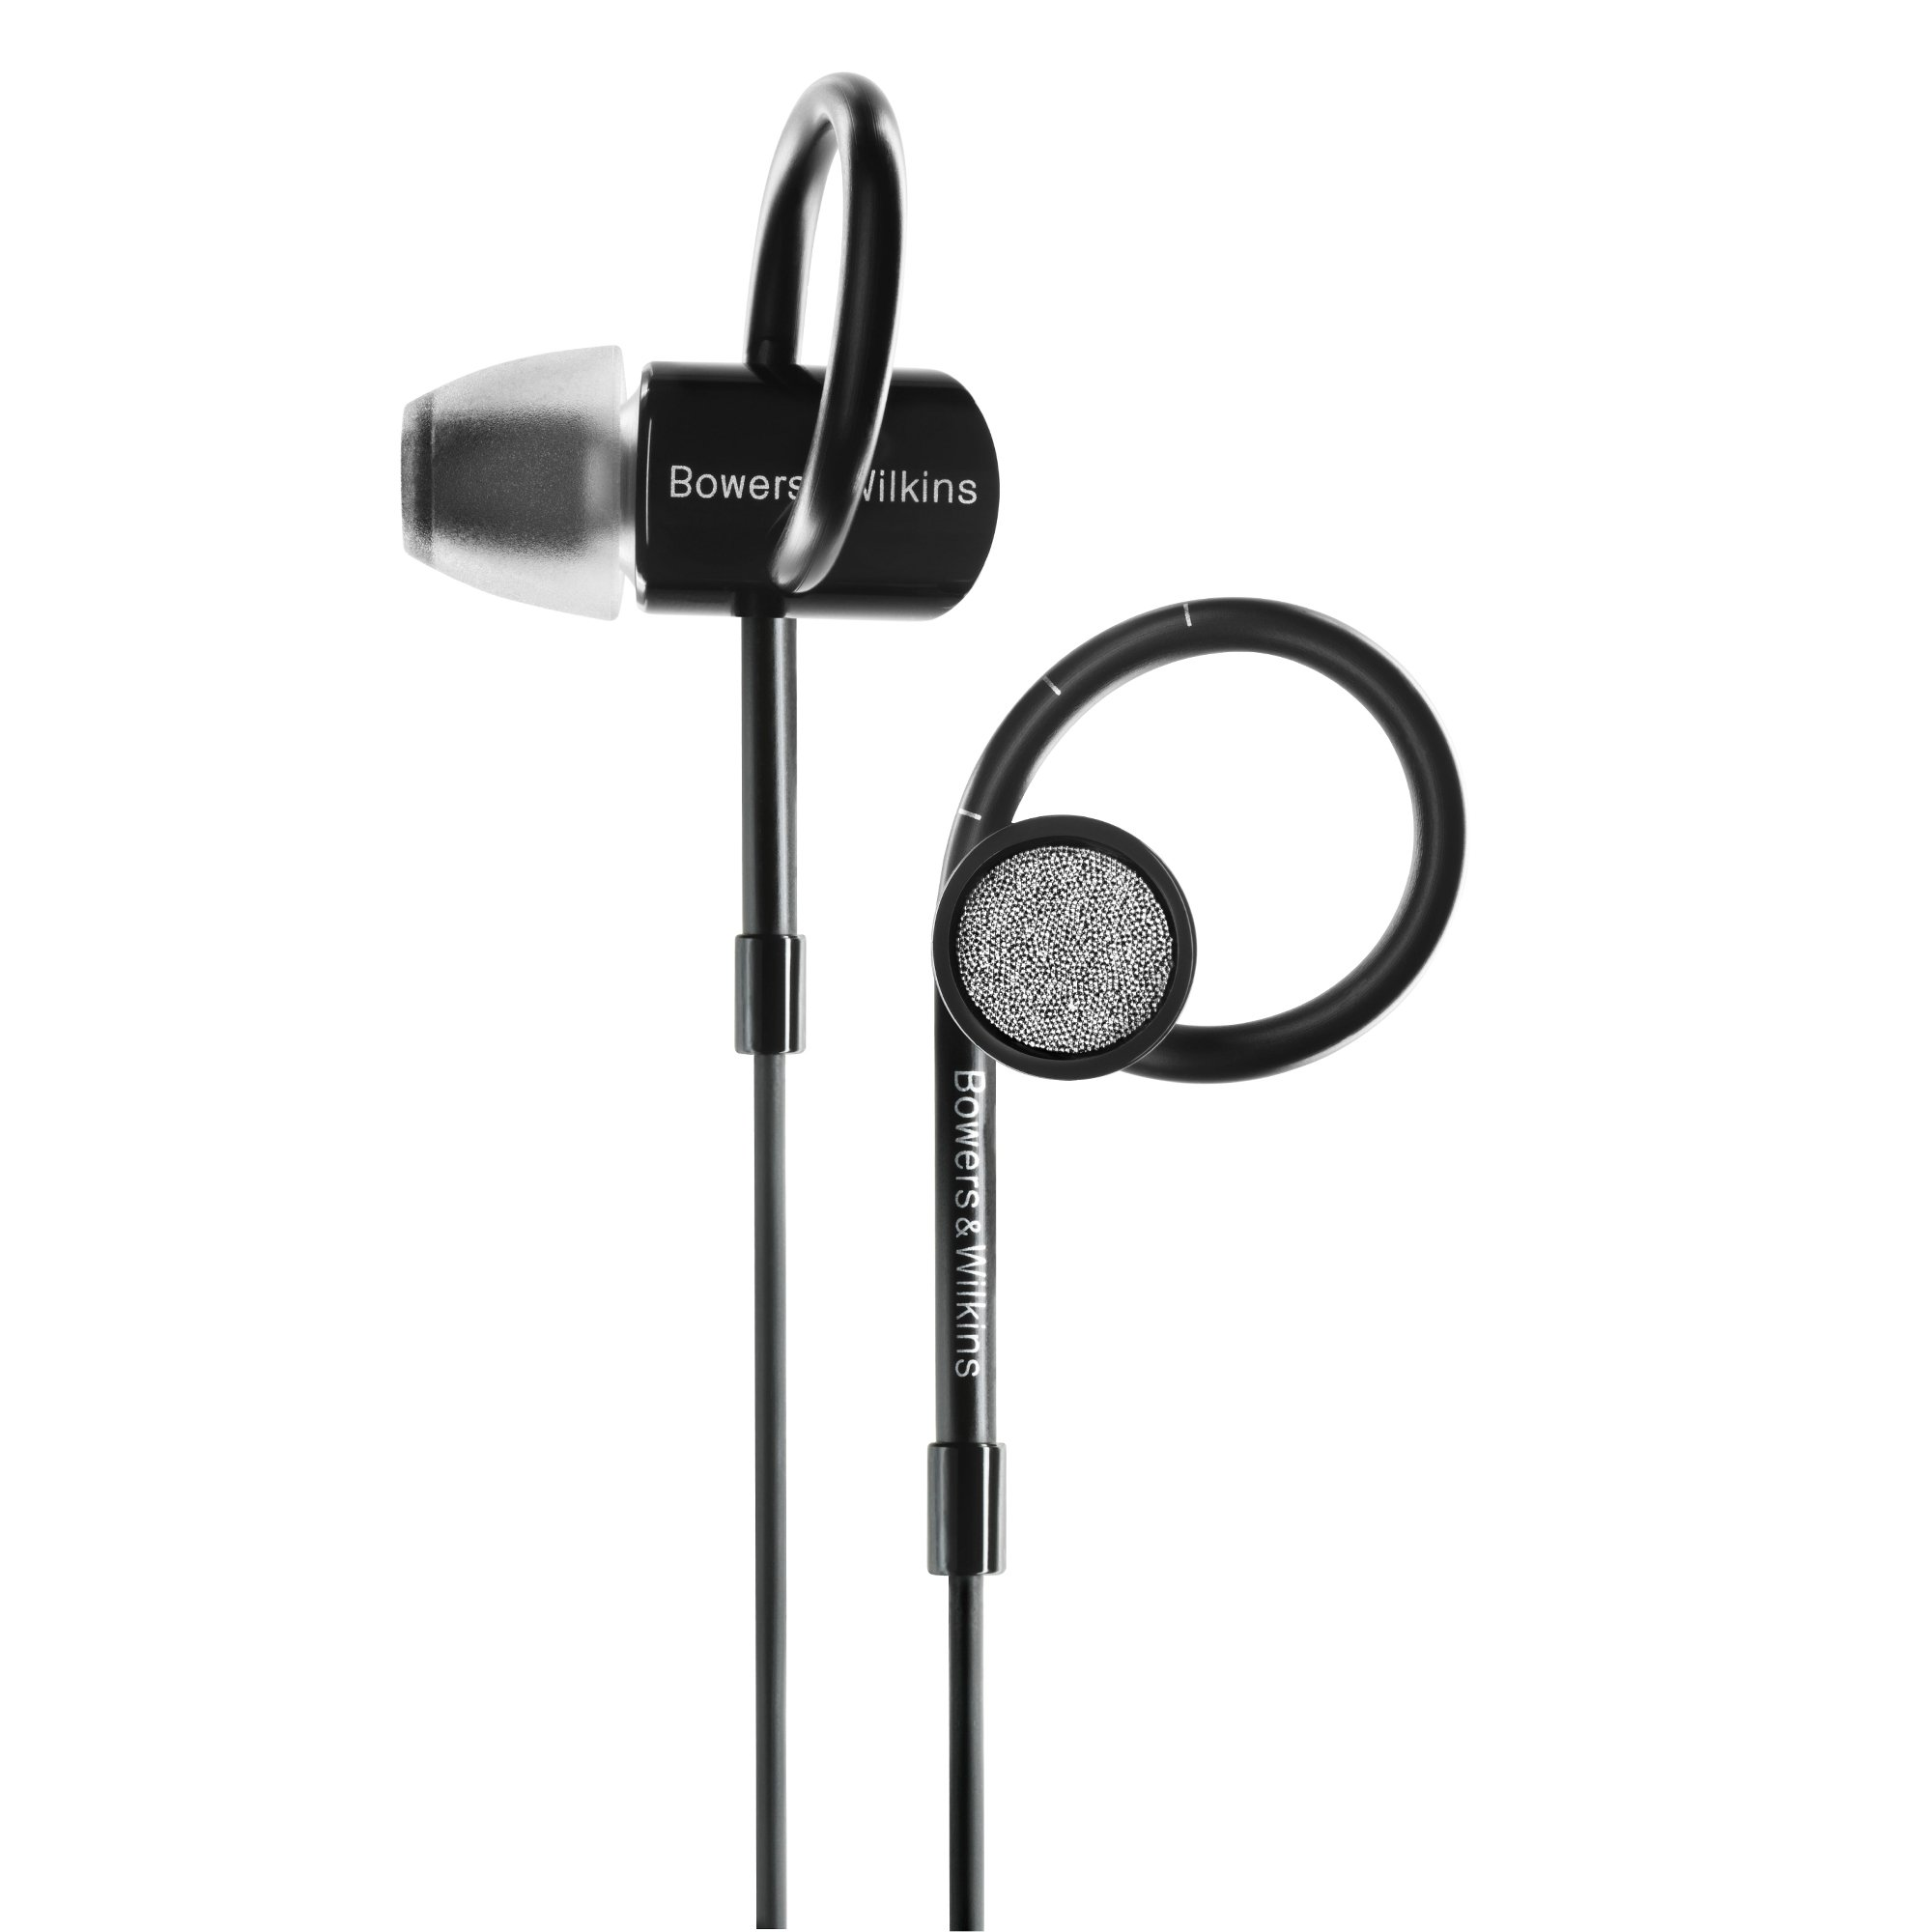 Bowers & Wilkins C5 Series 2 In-Ear Headphones, Secure Fit, Black by Bowers & Wilkins